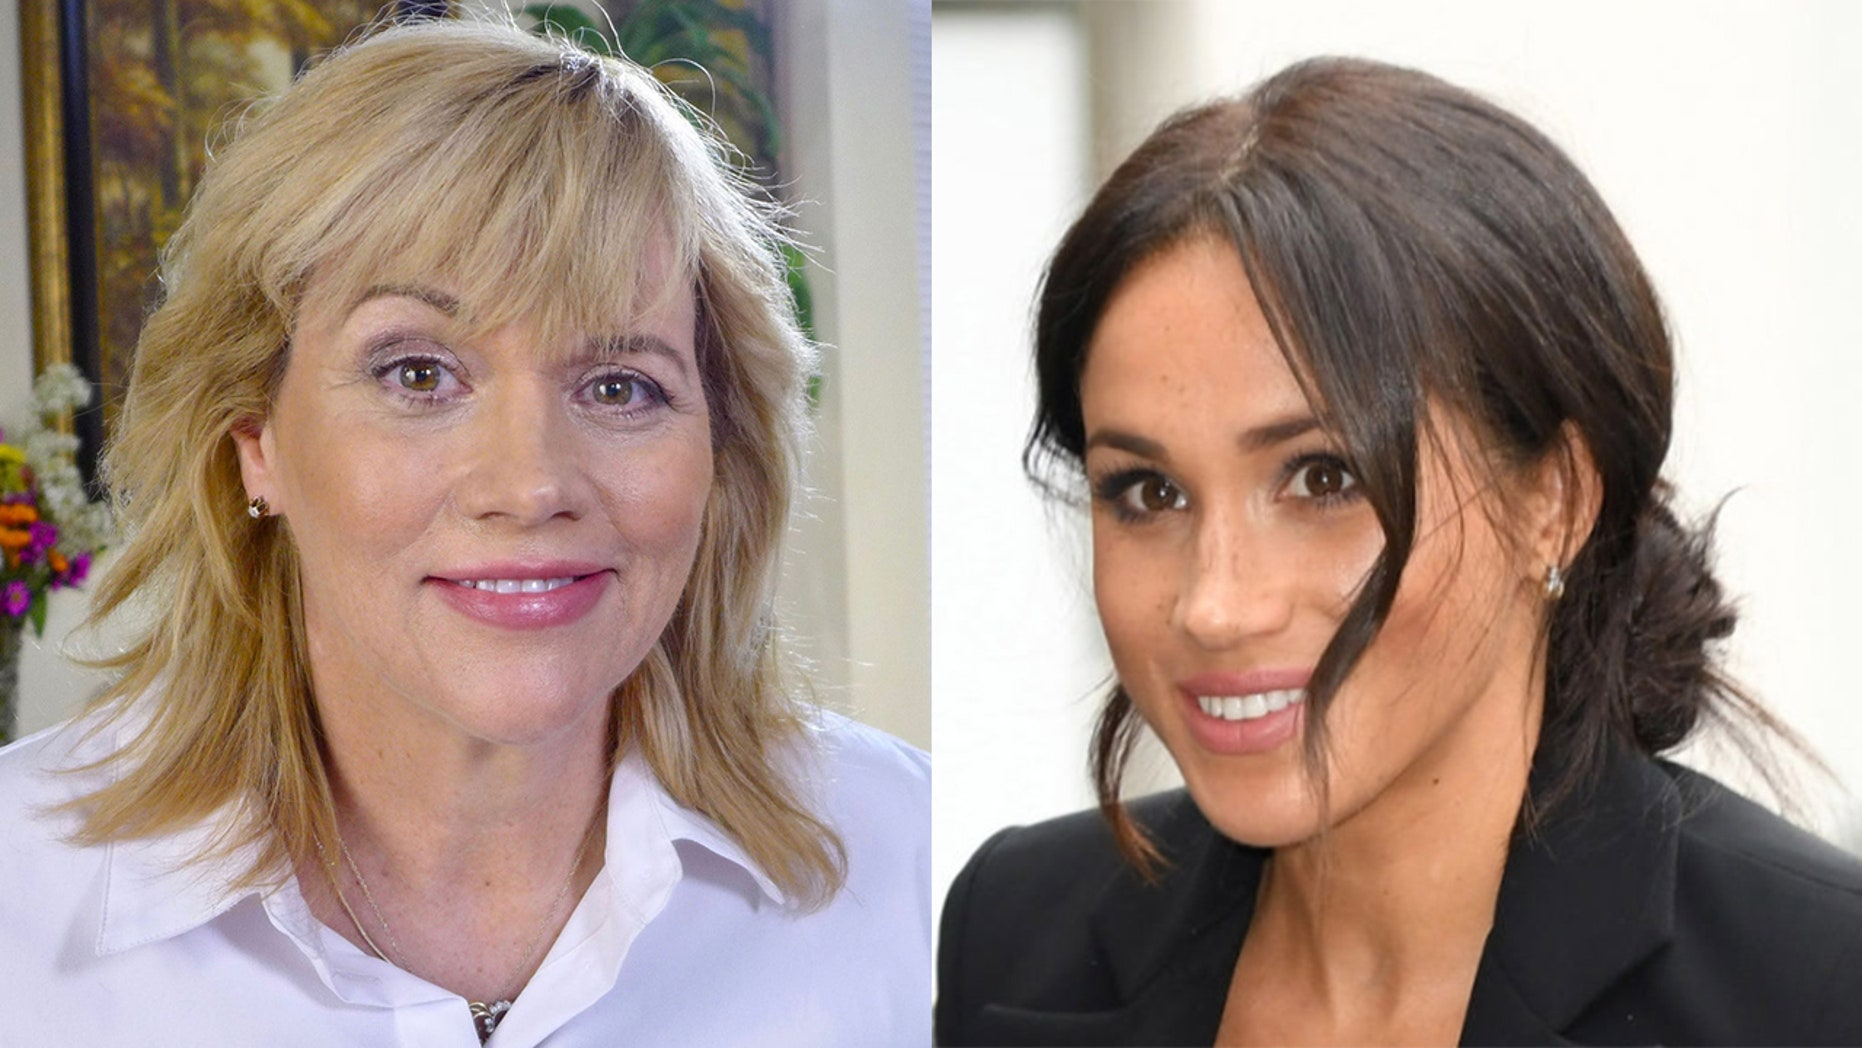 Samantha Markle backtracks on apology and calls sister Meghan out in a new rant on Twitter